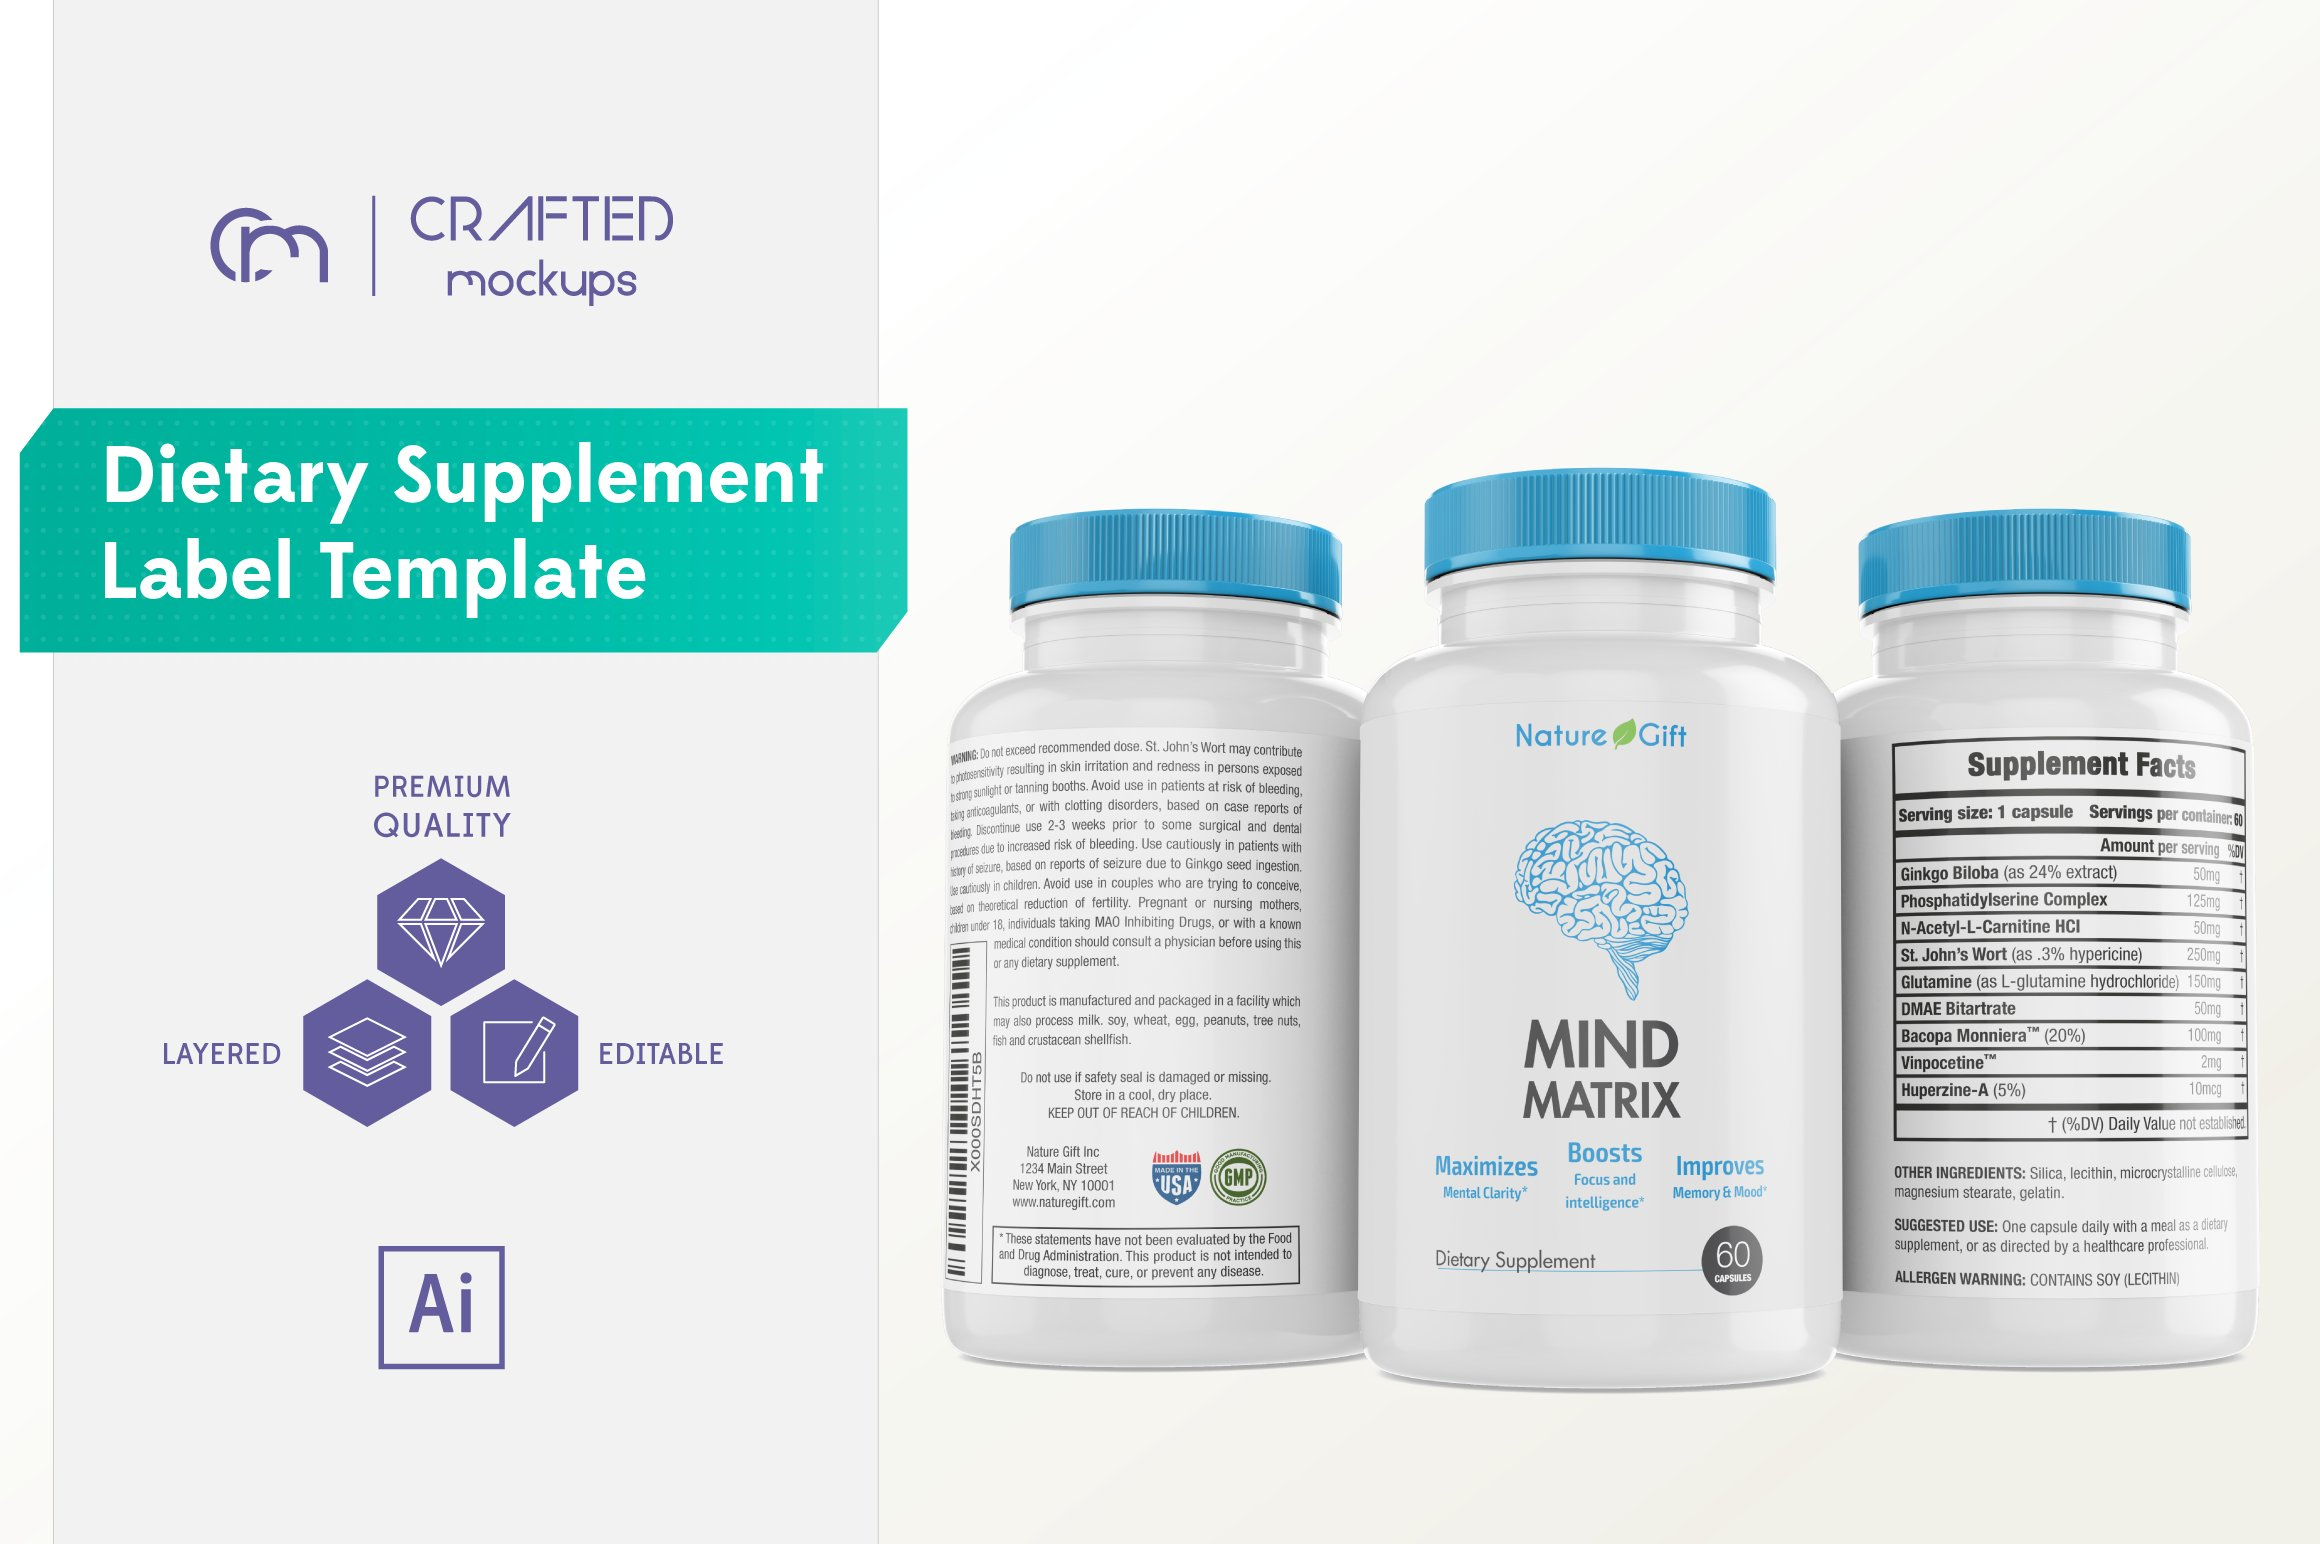 Dietary Supplement Label Template Templates Creative Market